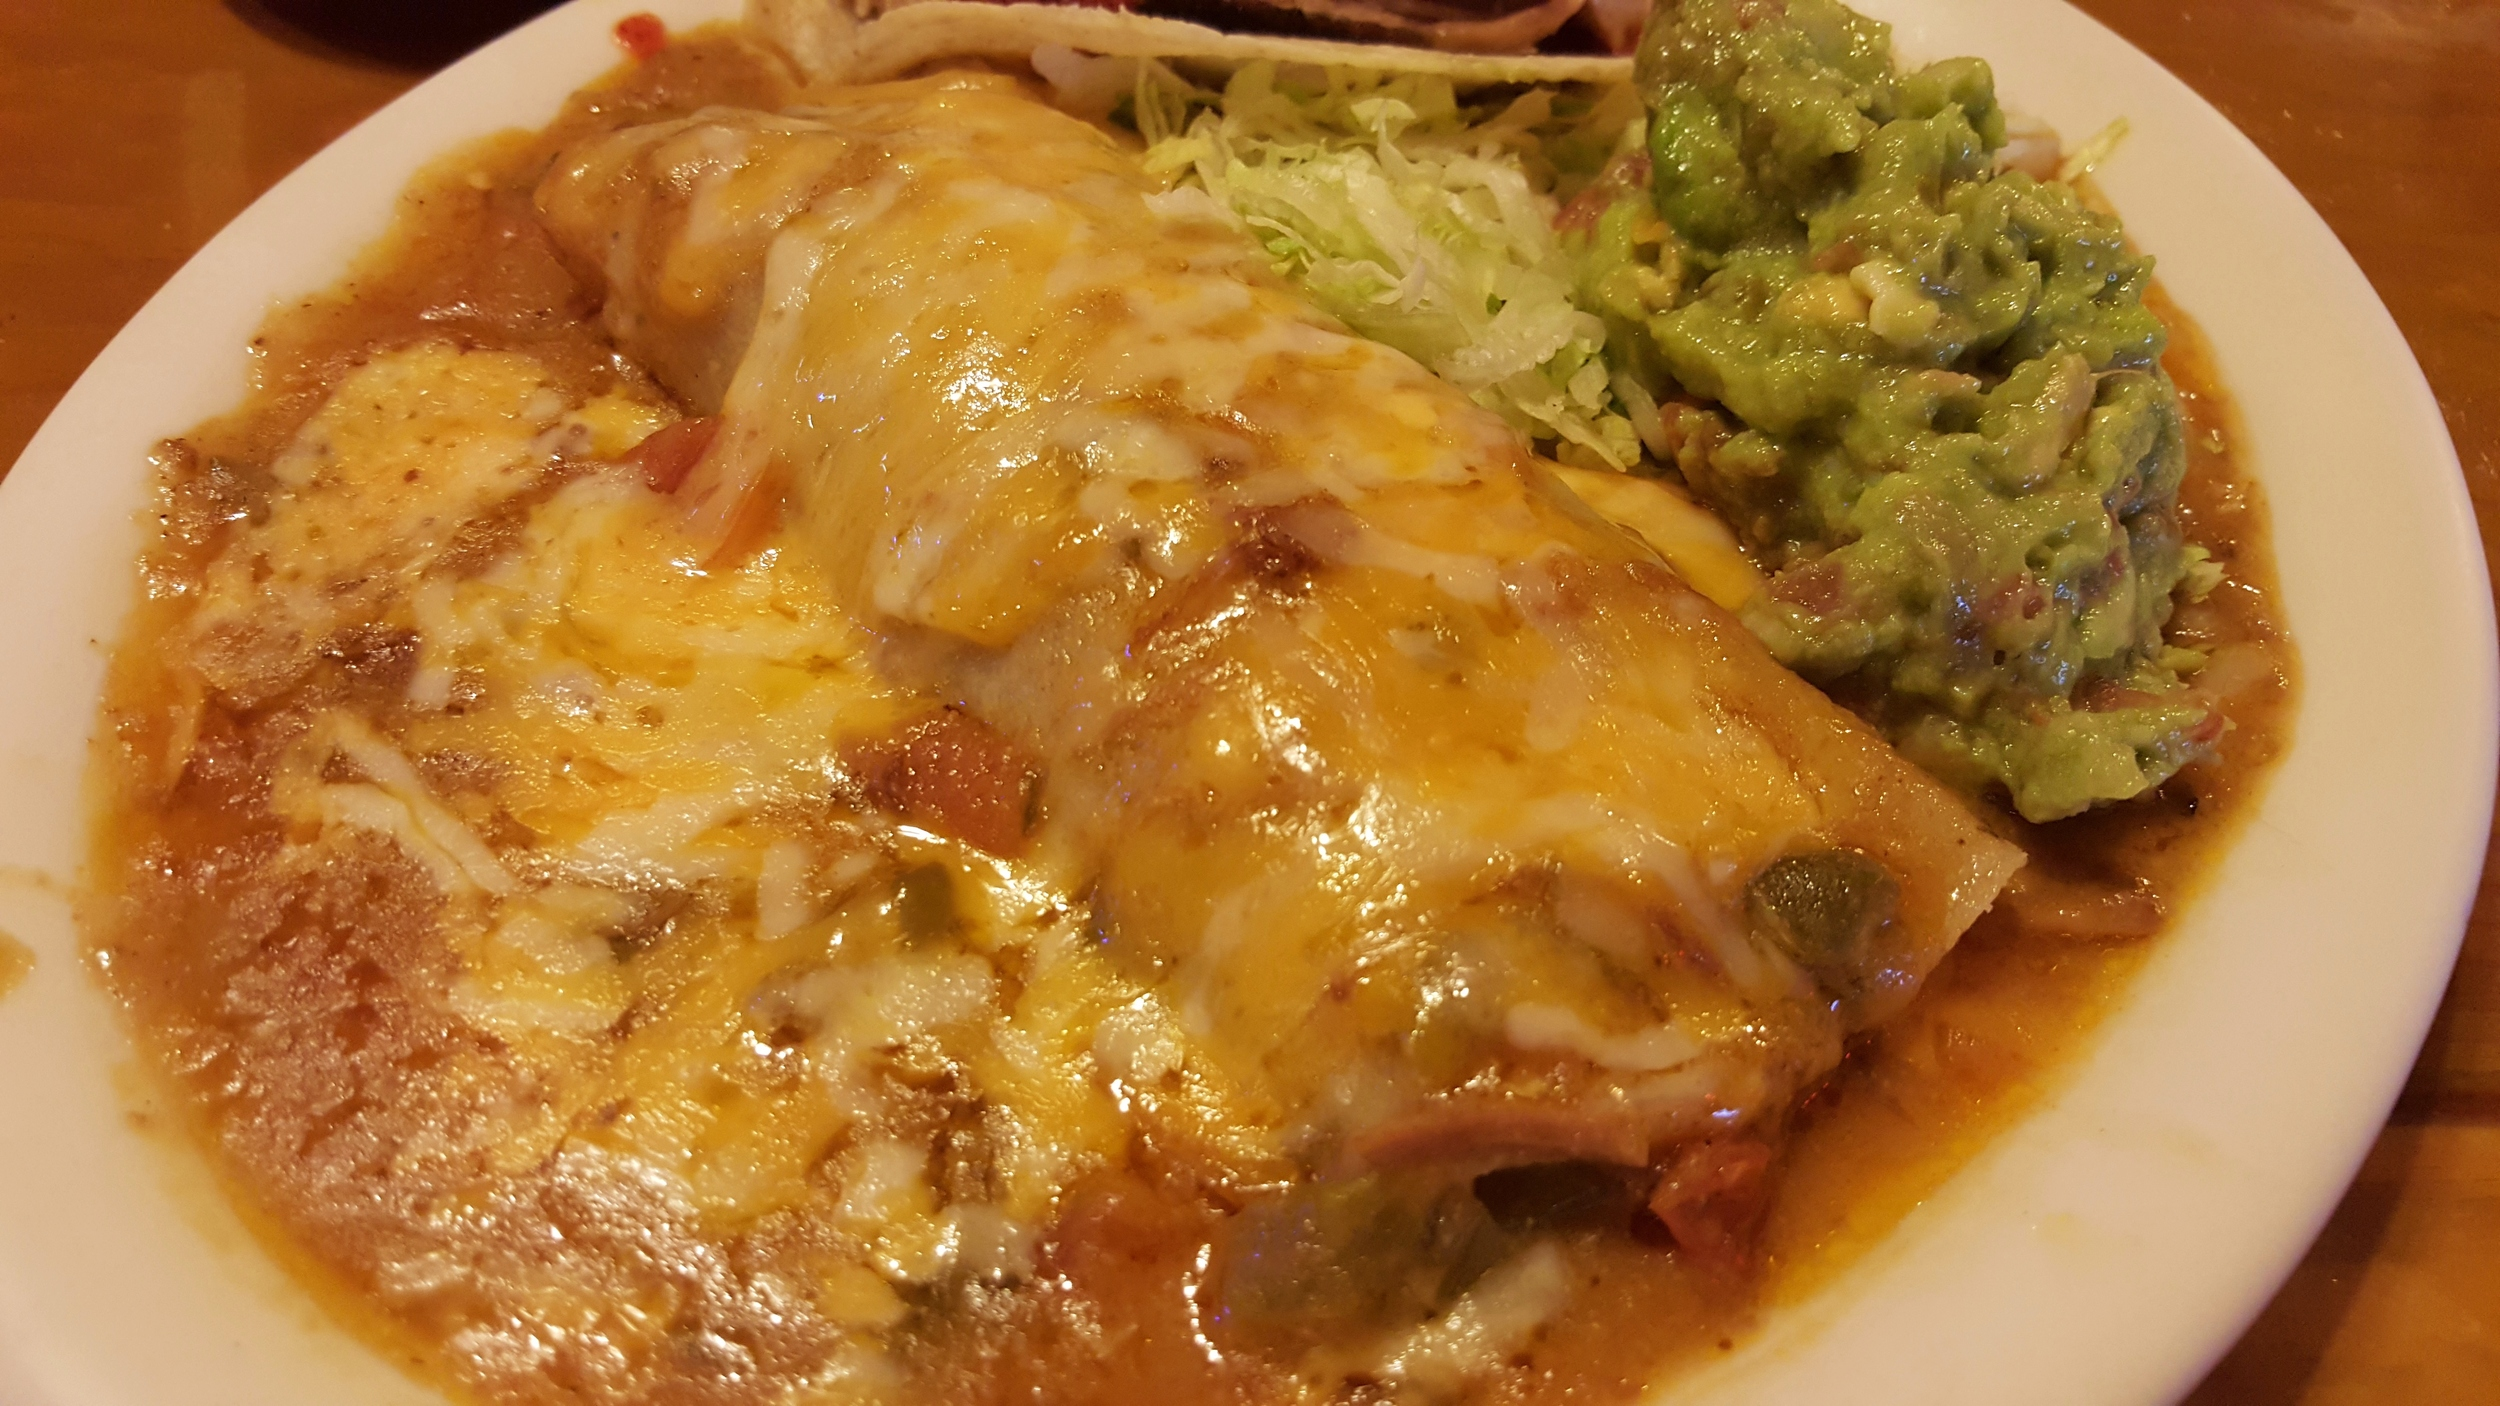 Machaca enchilada with chili verde